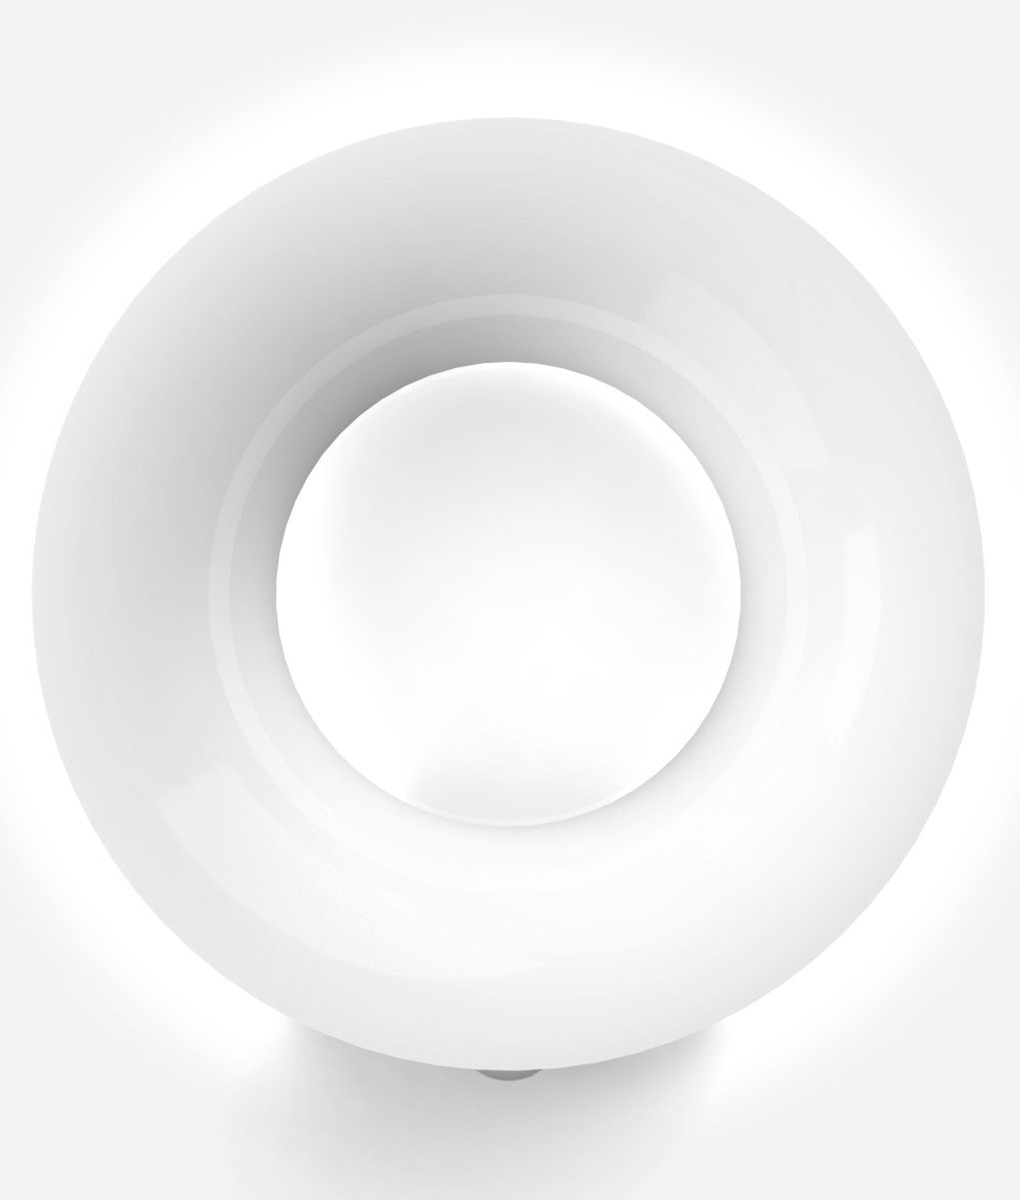 Interior Led Round Wall Light With Dimmer Dial